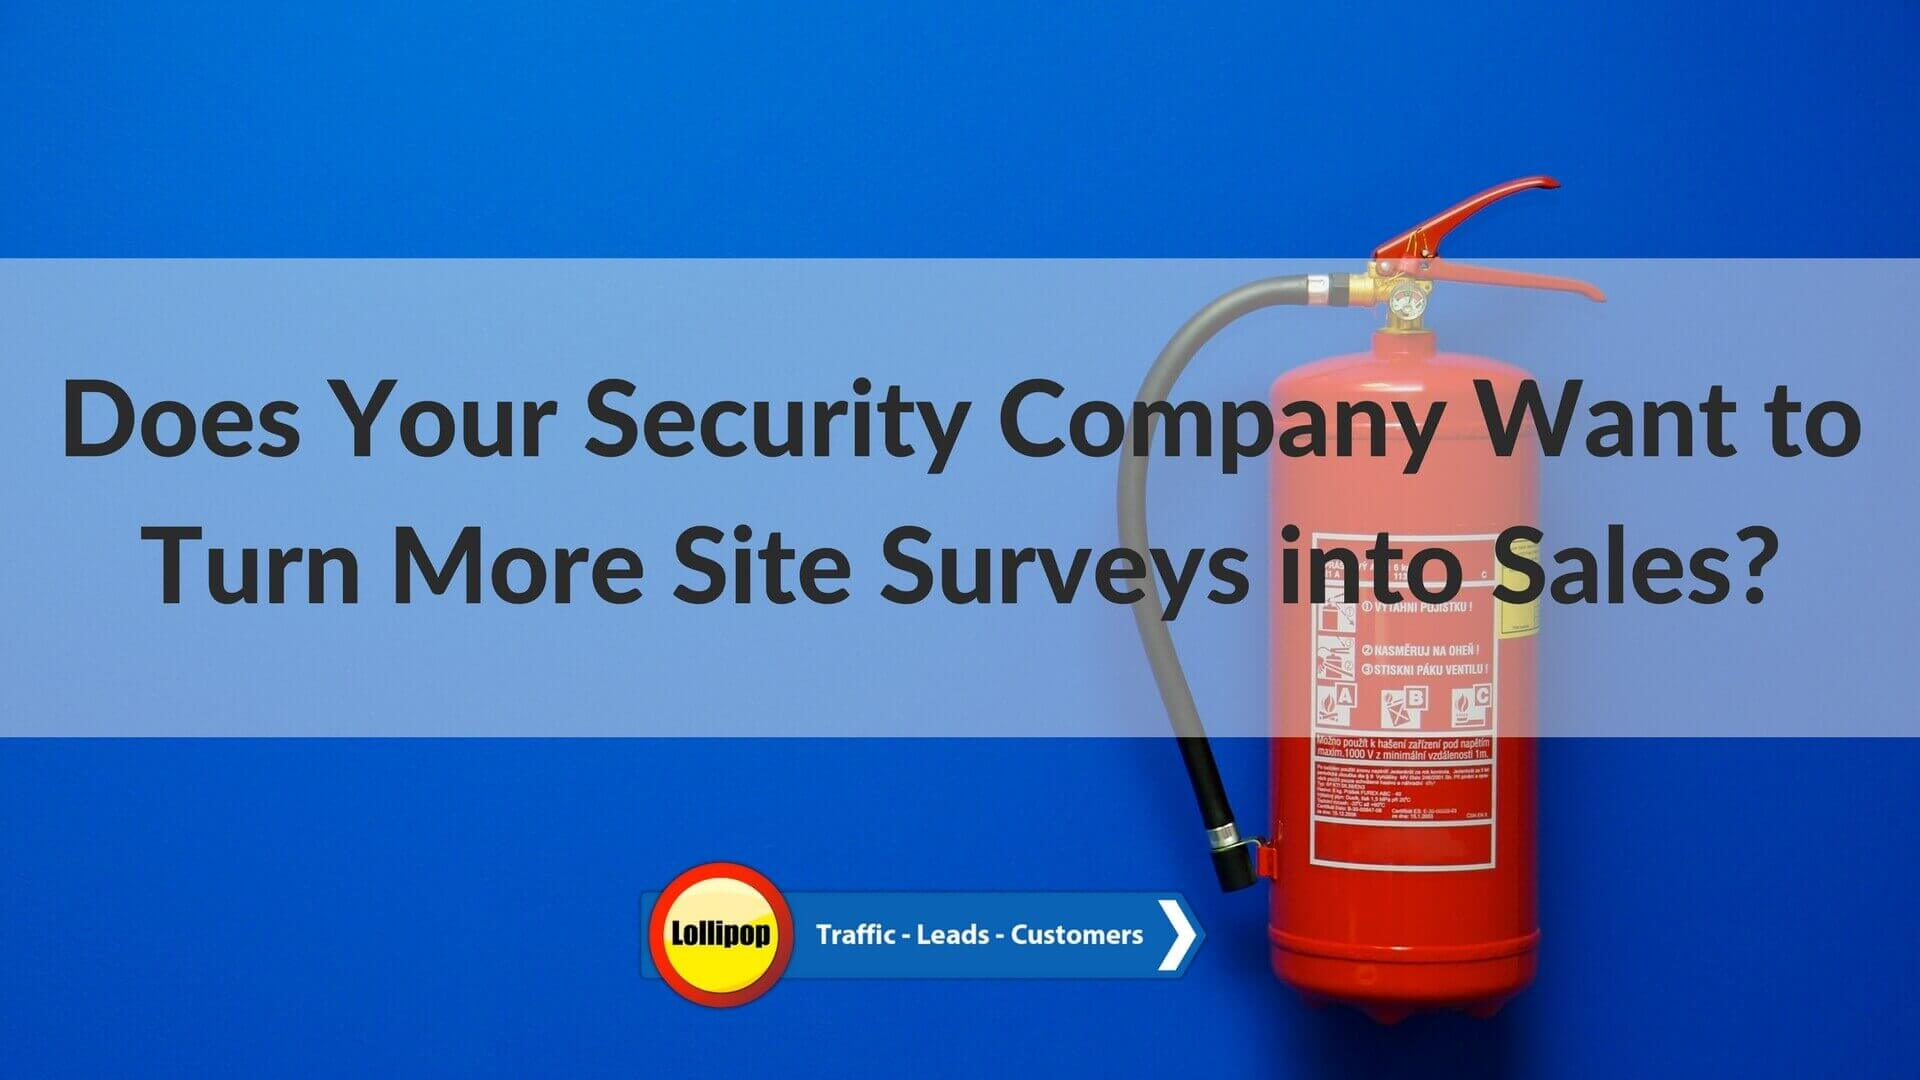 Does-your-Security-Company-want-to-turn-more-site-surveys-into sales